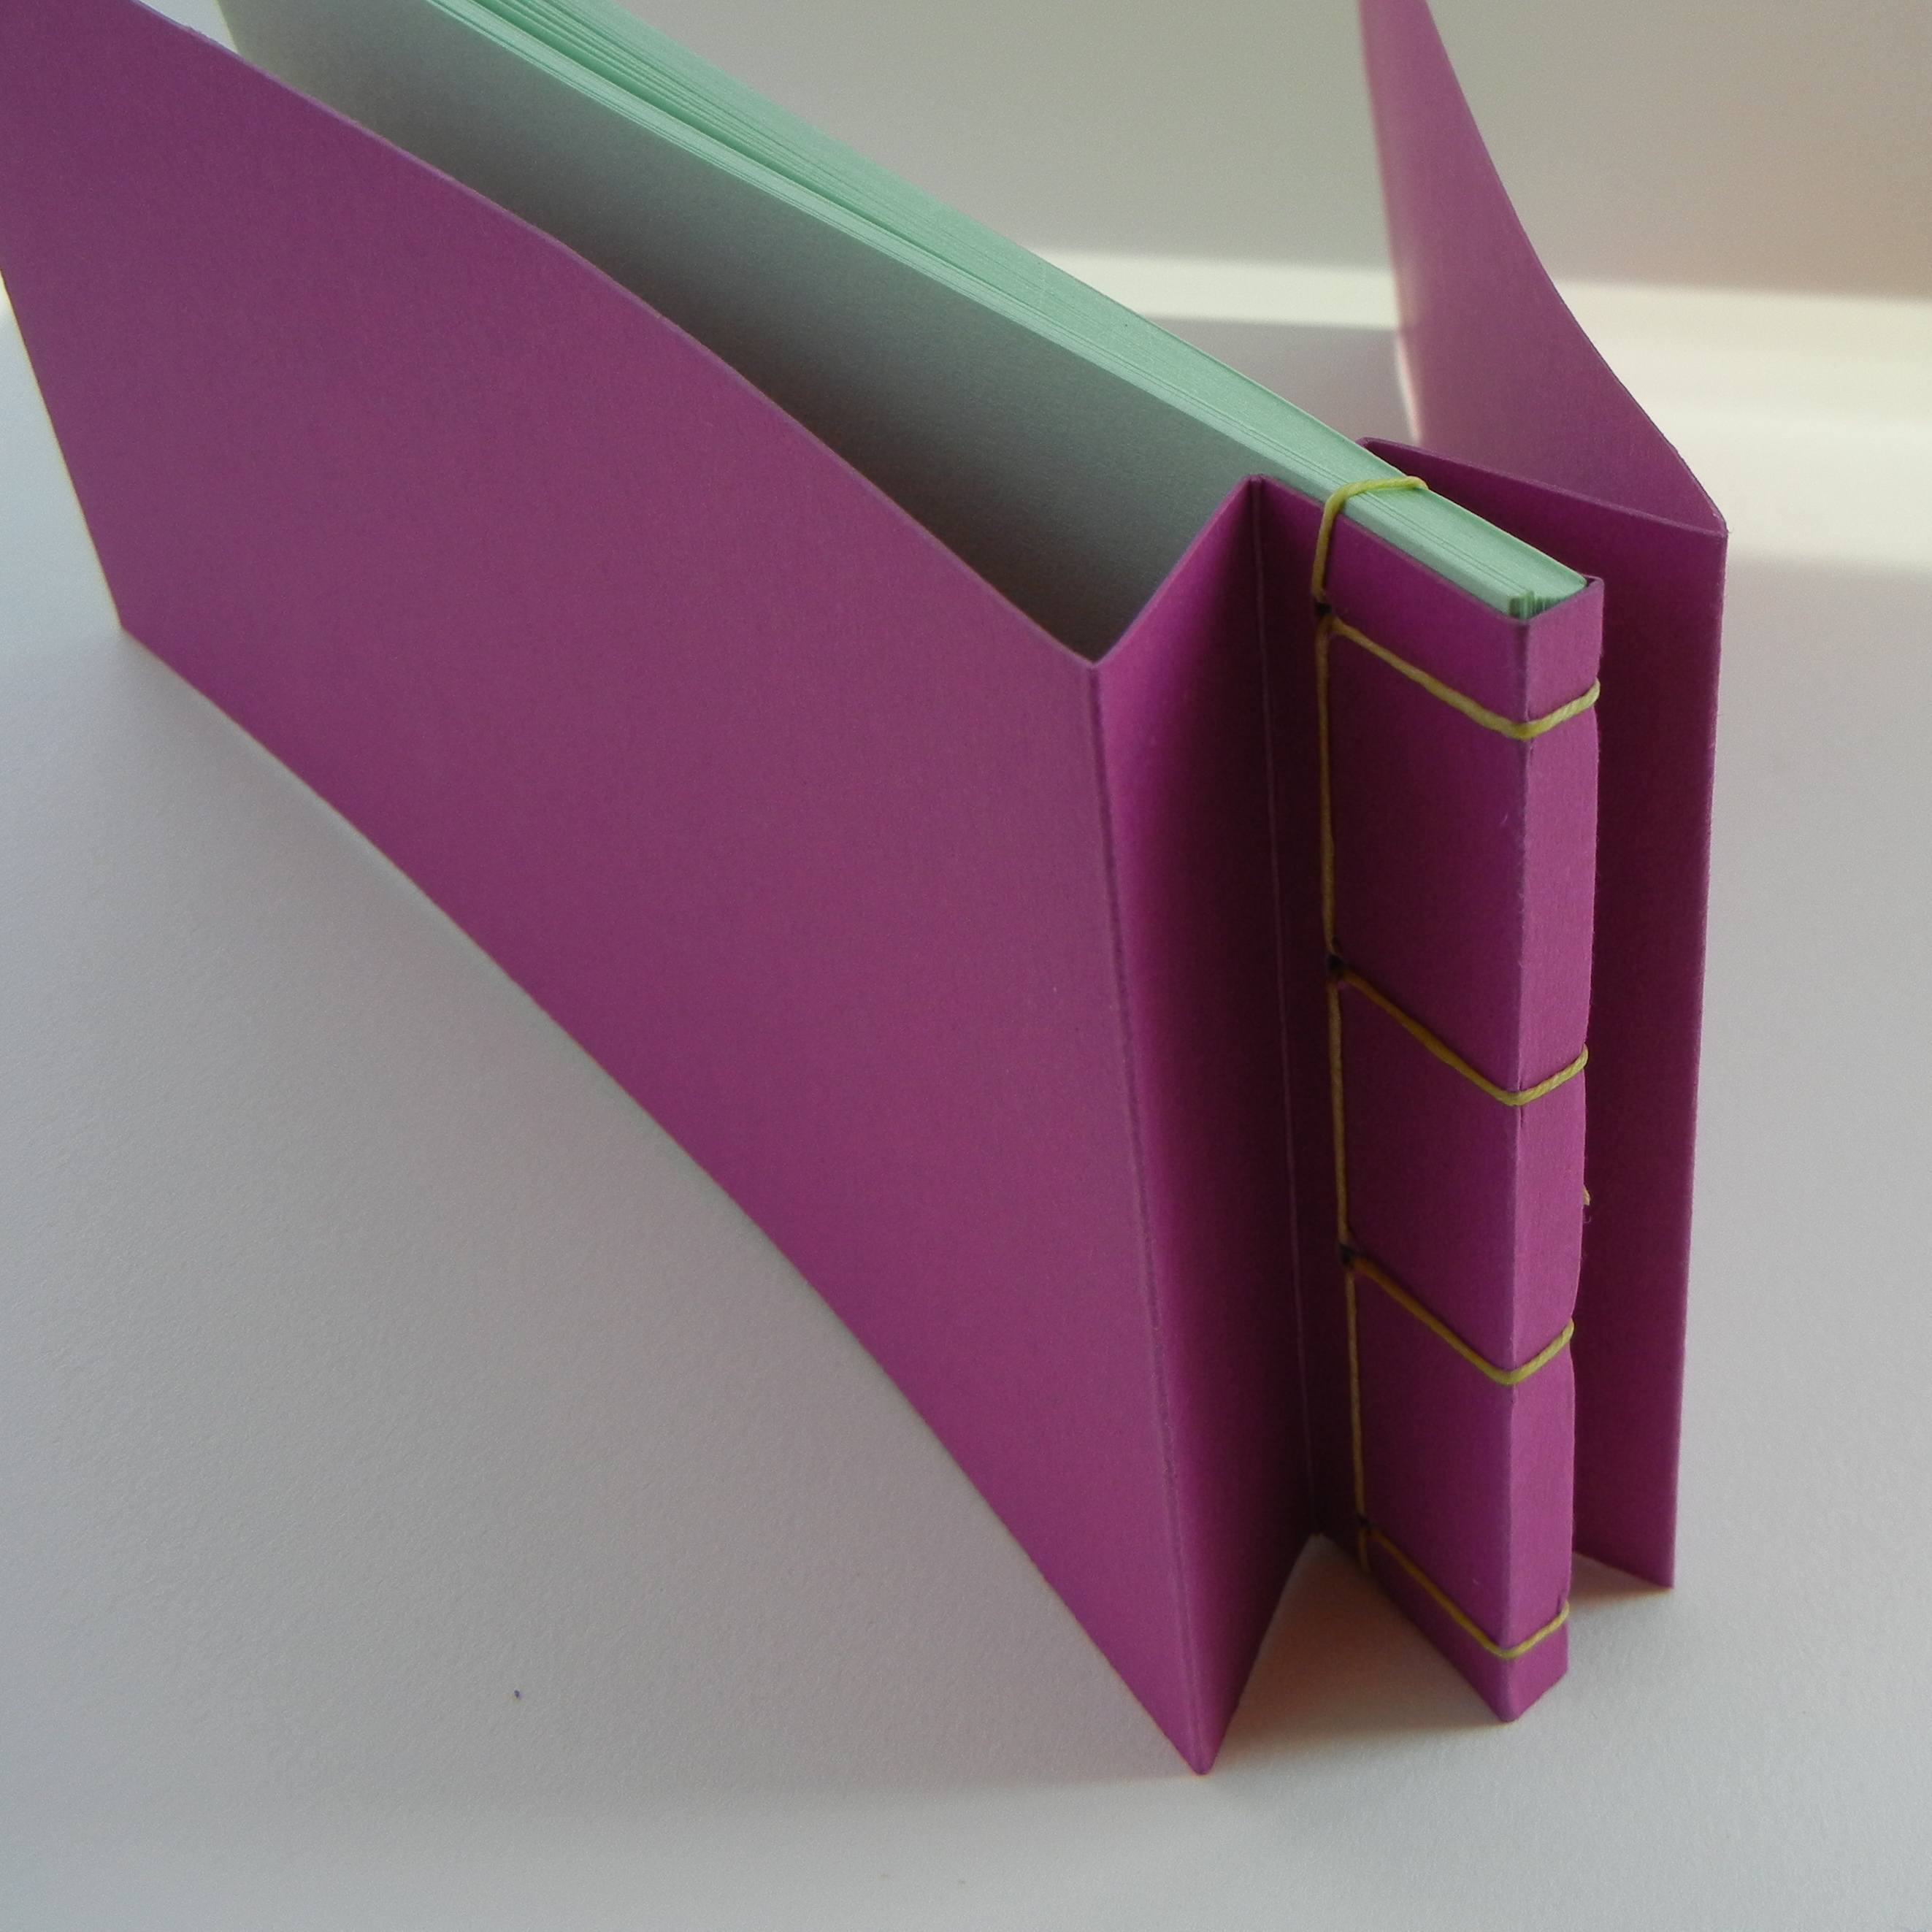 DIY Bookbinding- What We're Up To!